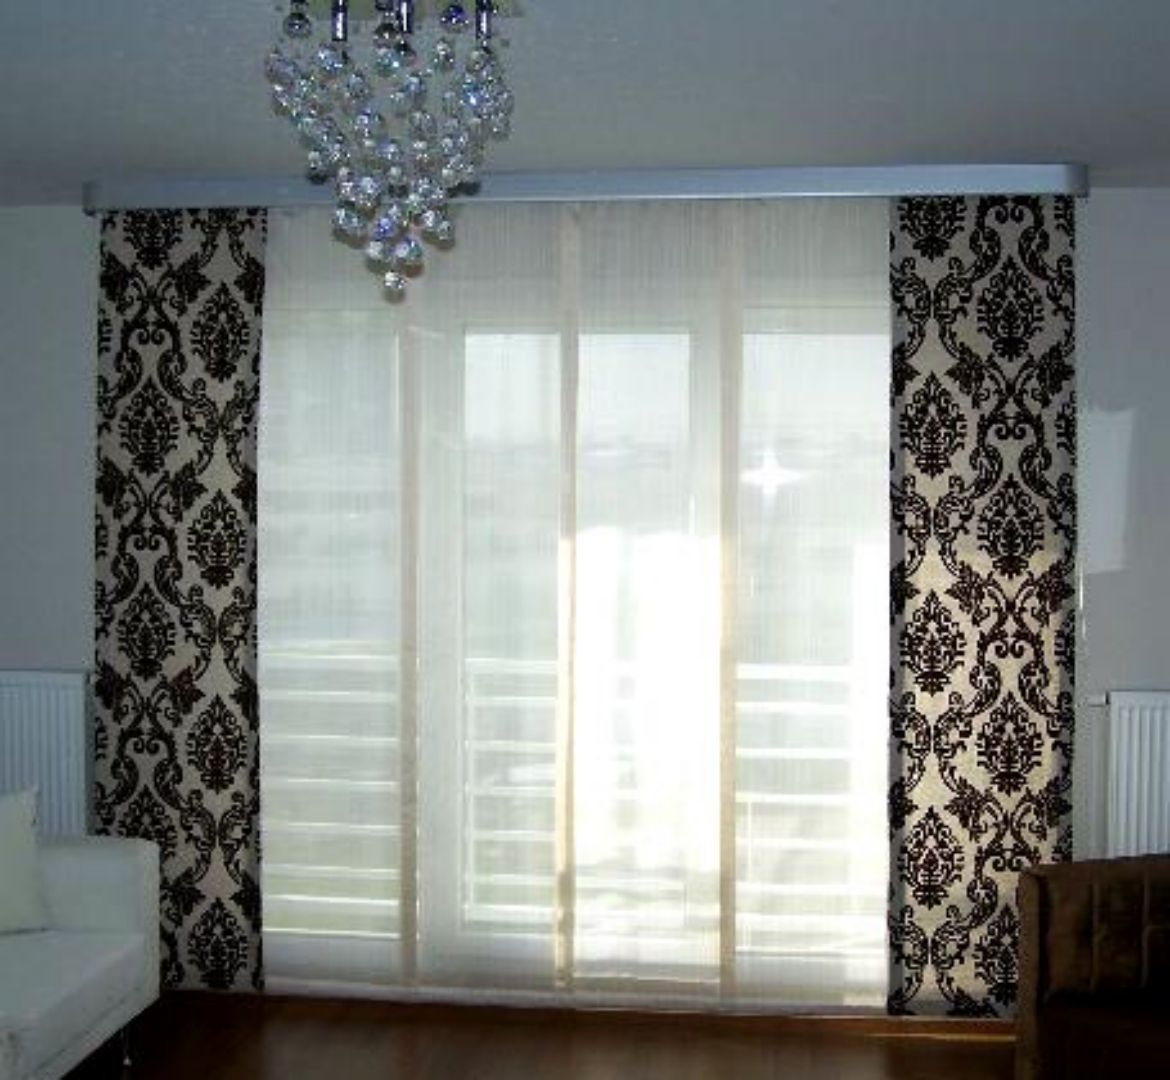 Charmant Best Modern Patteren Curtain With Sheer In Between Modern Curtain  Decoration Ideas Modern Curtain Design Ideas